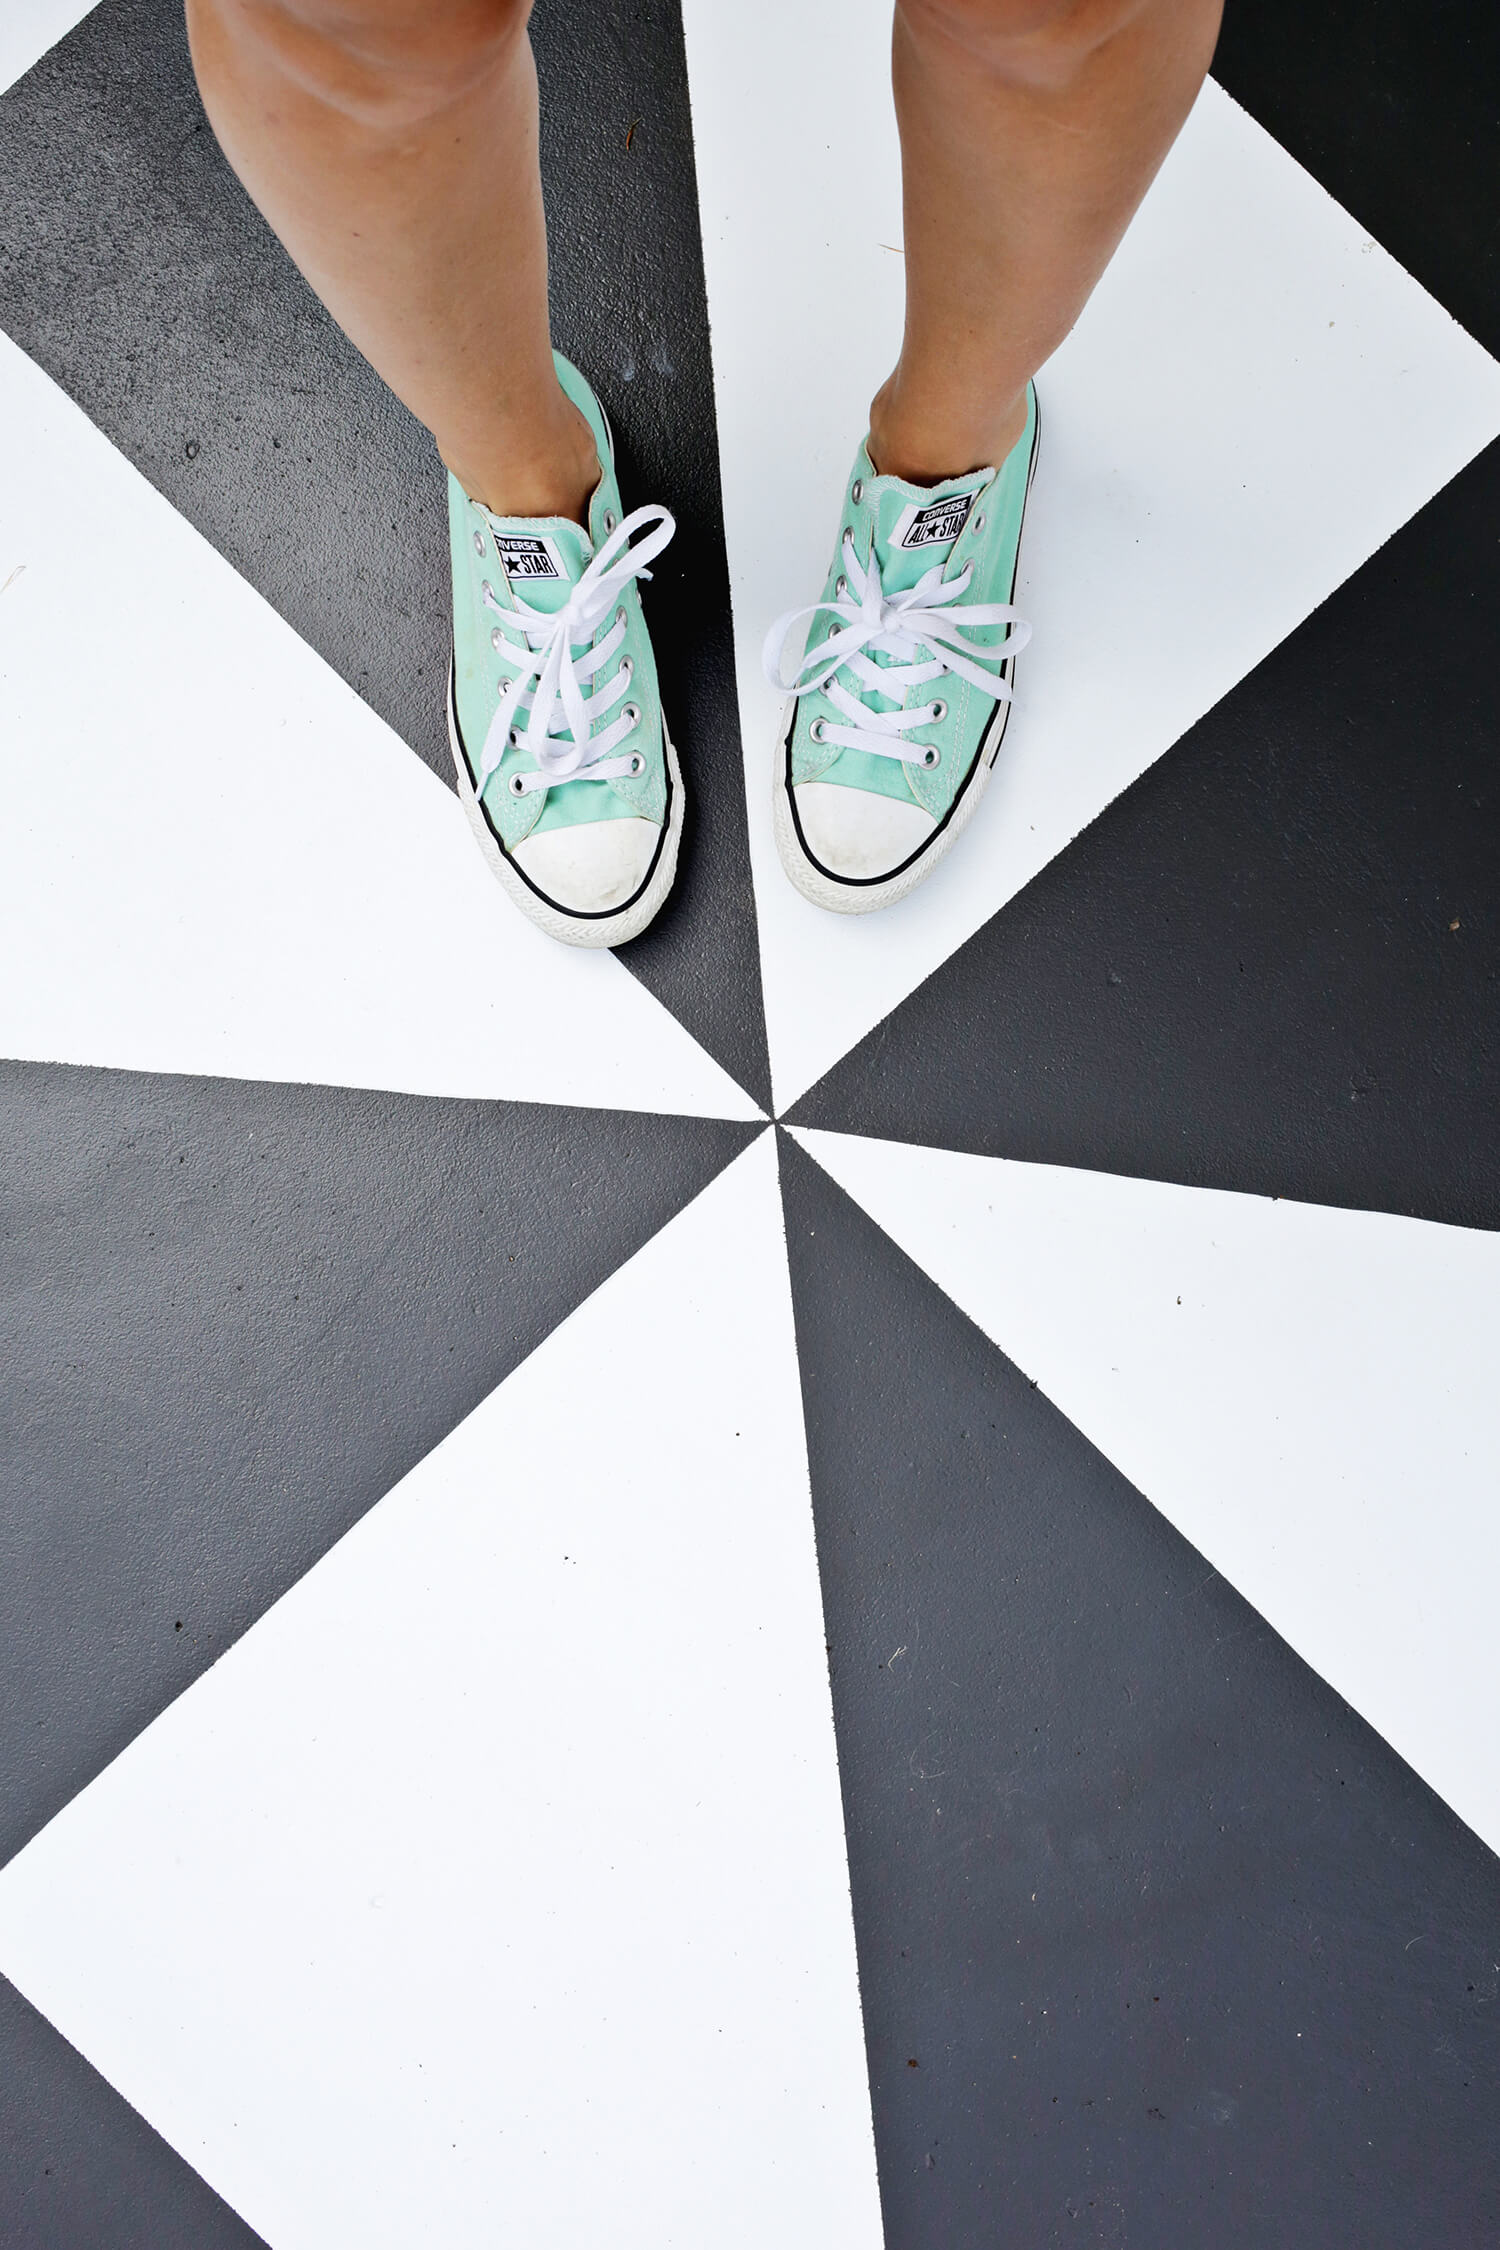 Amazing! Painted Patio Tile DIY (click through for tutorial